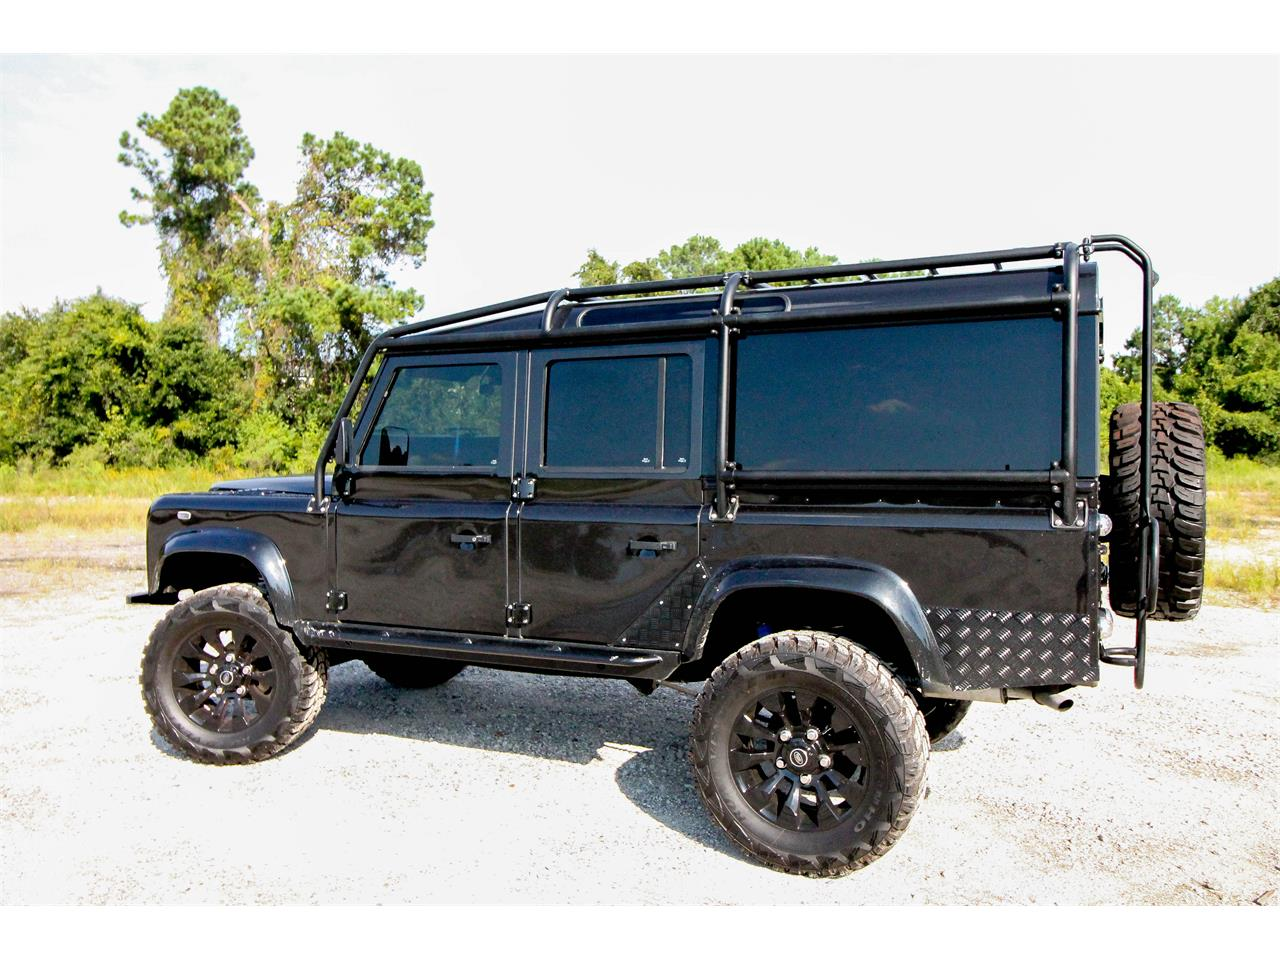 Large Picture of 1990 Land Rover Defender located in South Carolina - $59,000.00 Offered by a Private Seller - LR1M